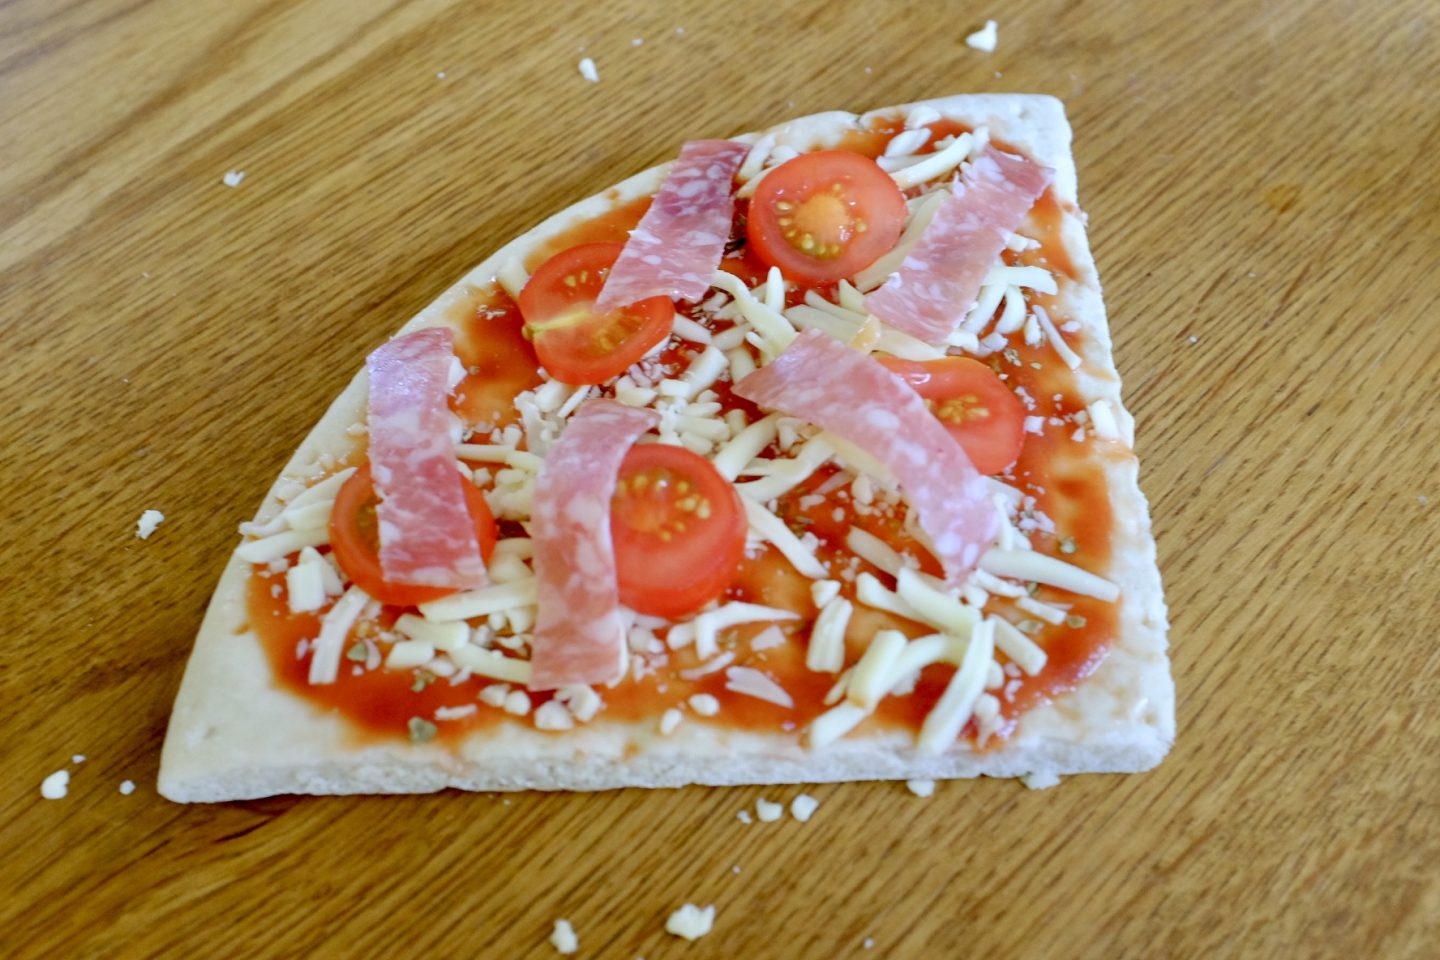 piccolo tomatoes on a pizza